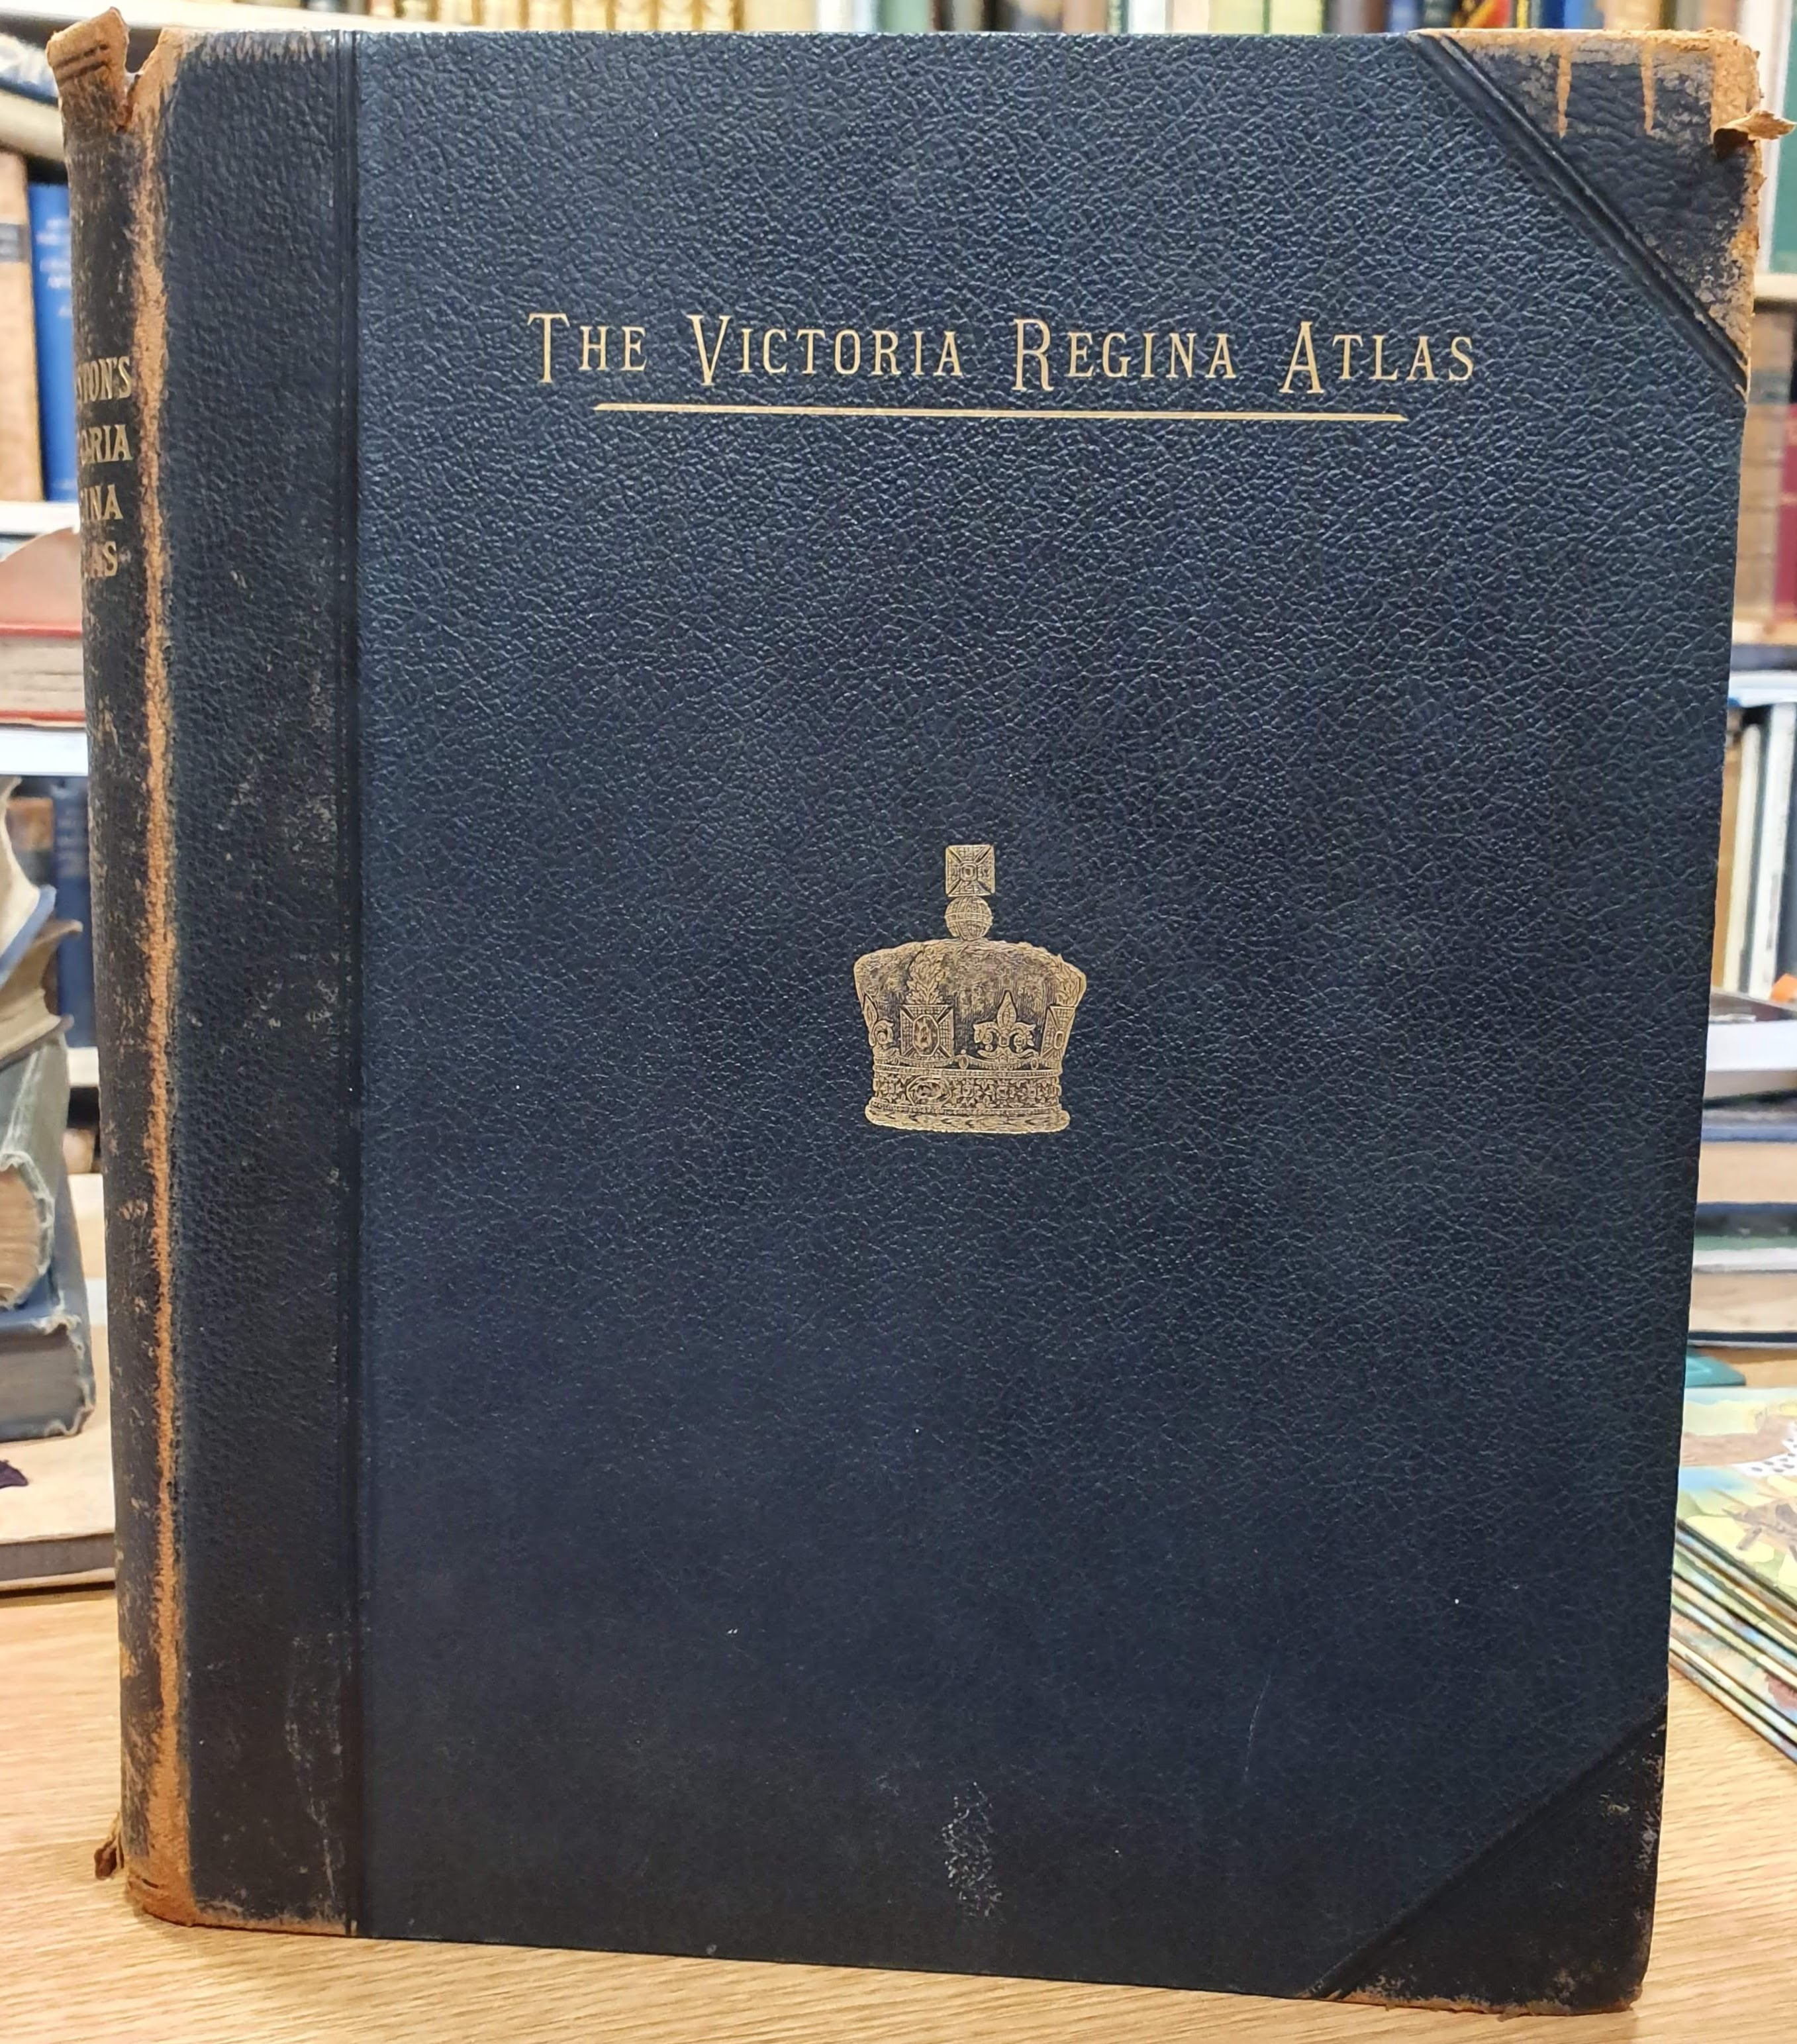 Image for The Victoria Regina Atlas: Political, Physical & Astronomical, Containing Two Hundred Plates and Complete Index.